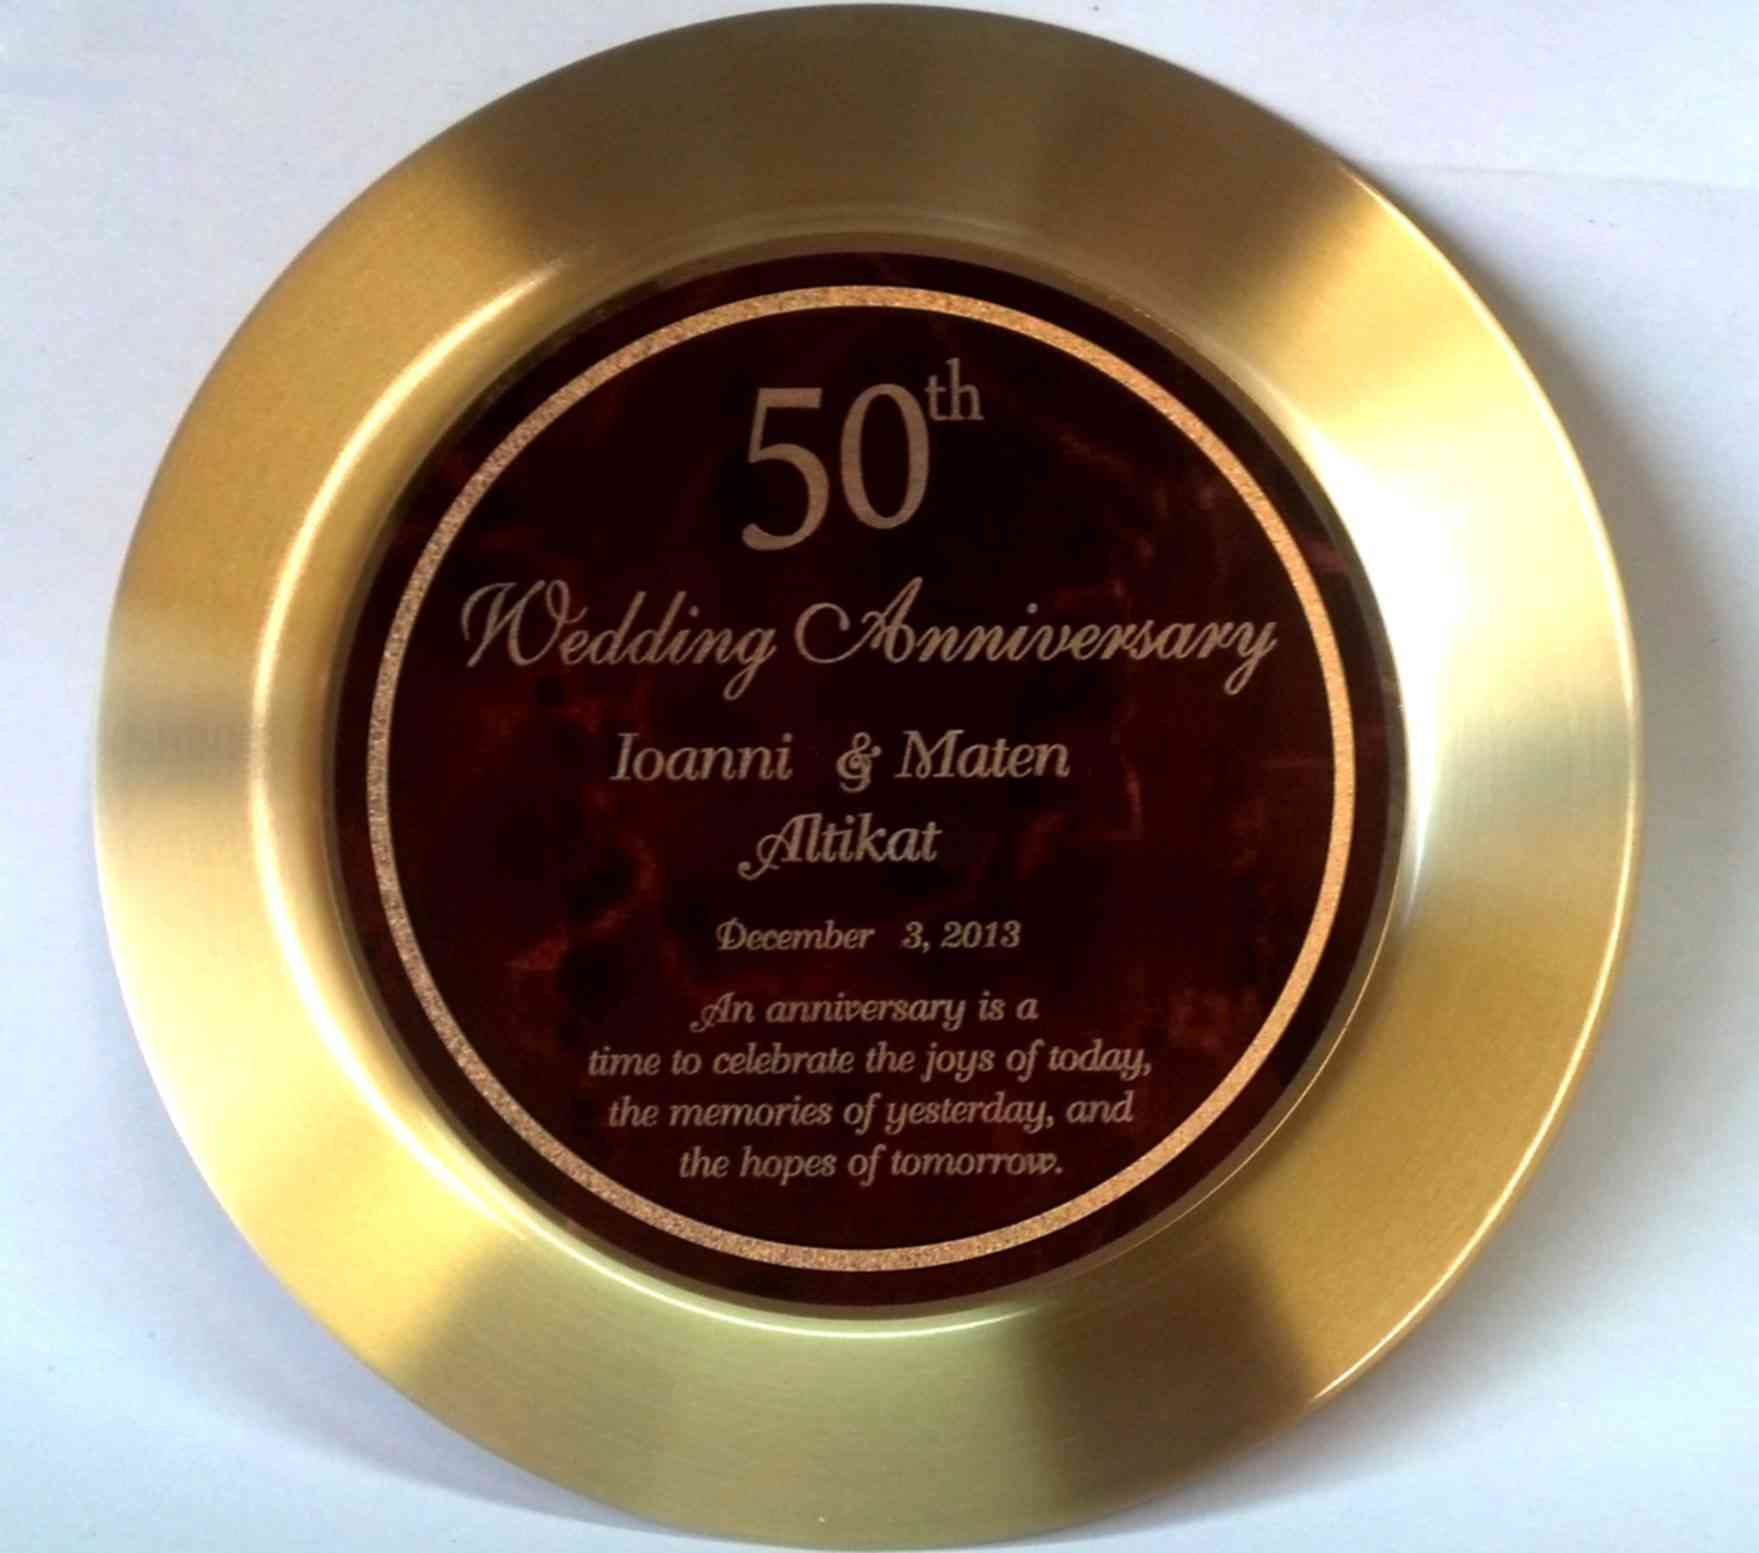 Wedding Gift Engraved Message : Presentation Plates, Trays & Platters Engraved for a Personalized Gift